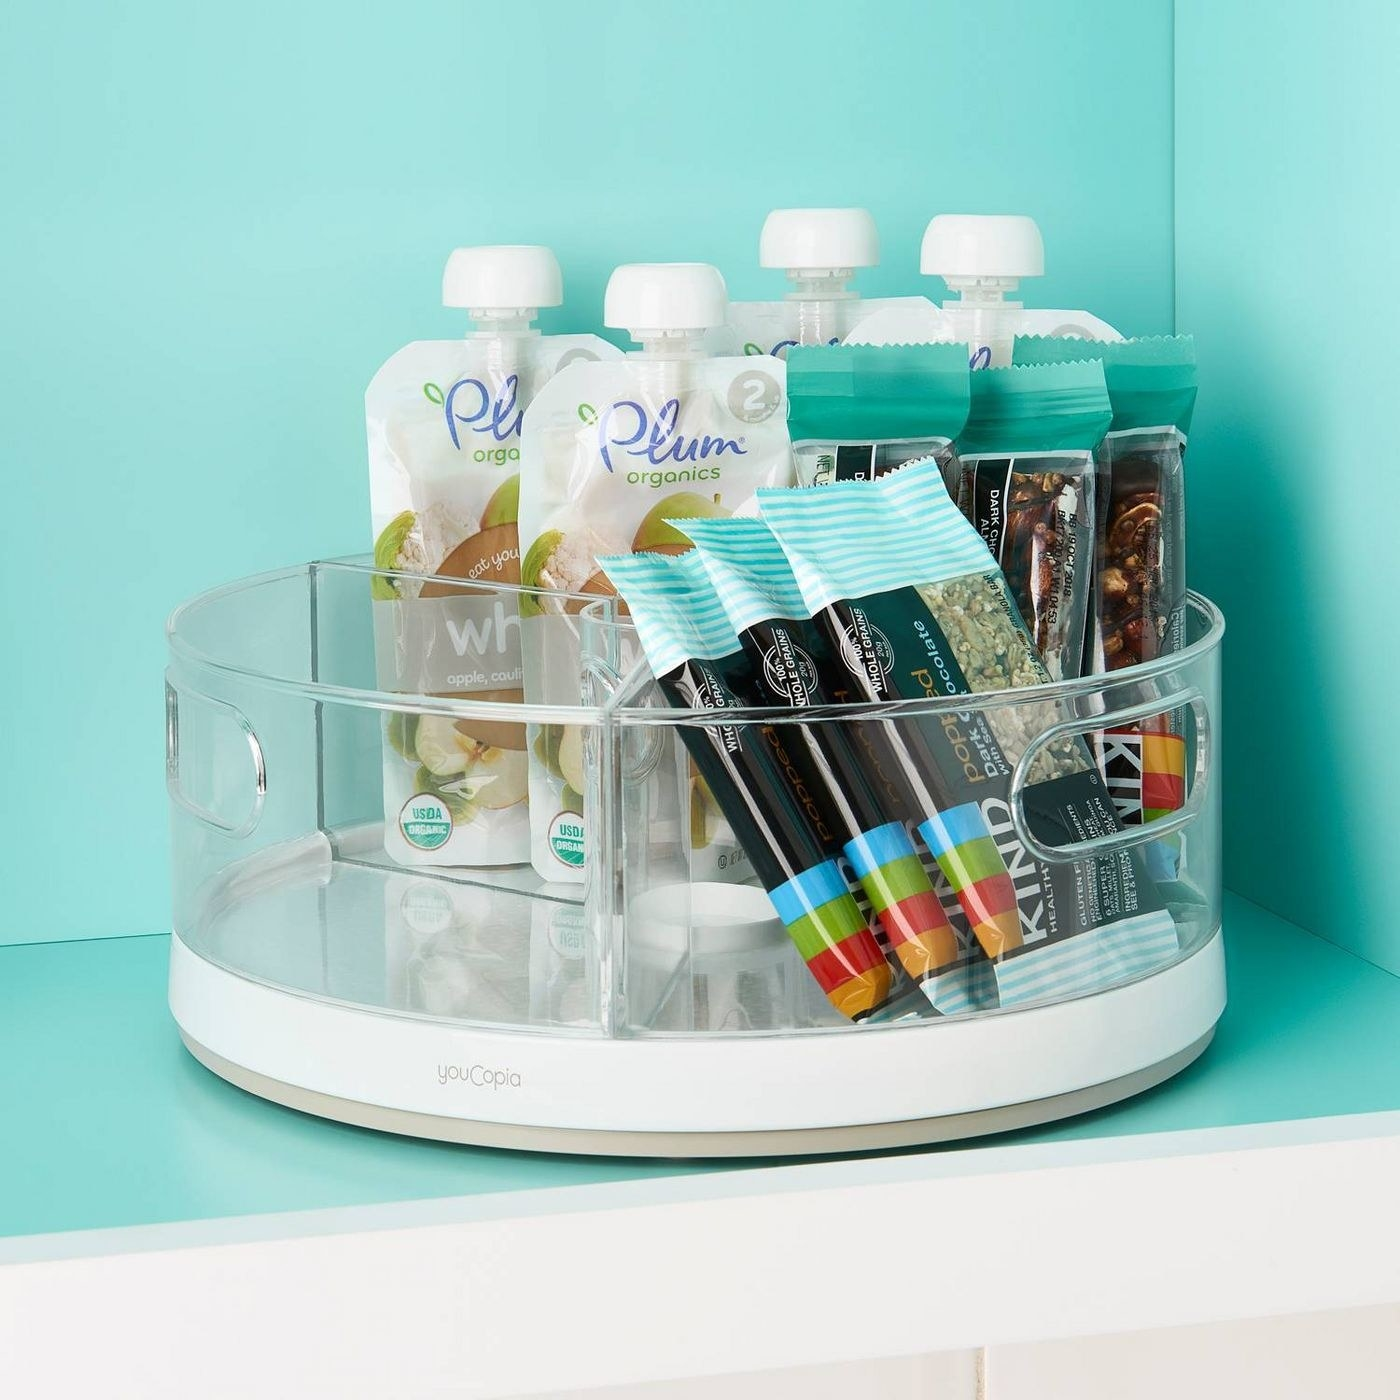 clear plastic turntable with different bins holding snacks